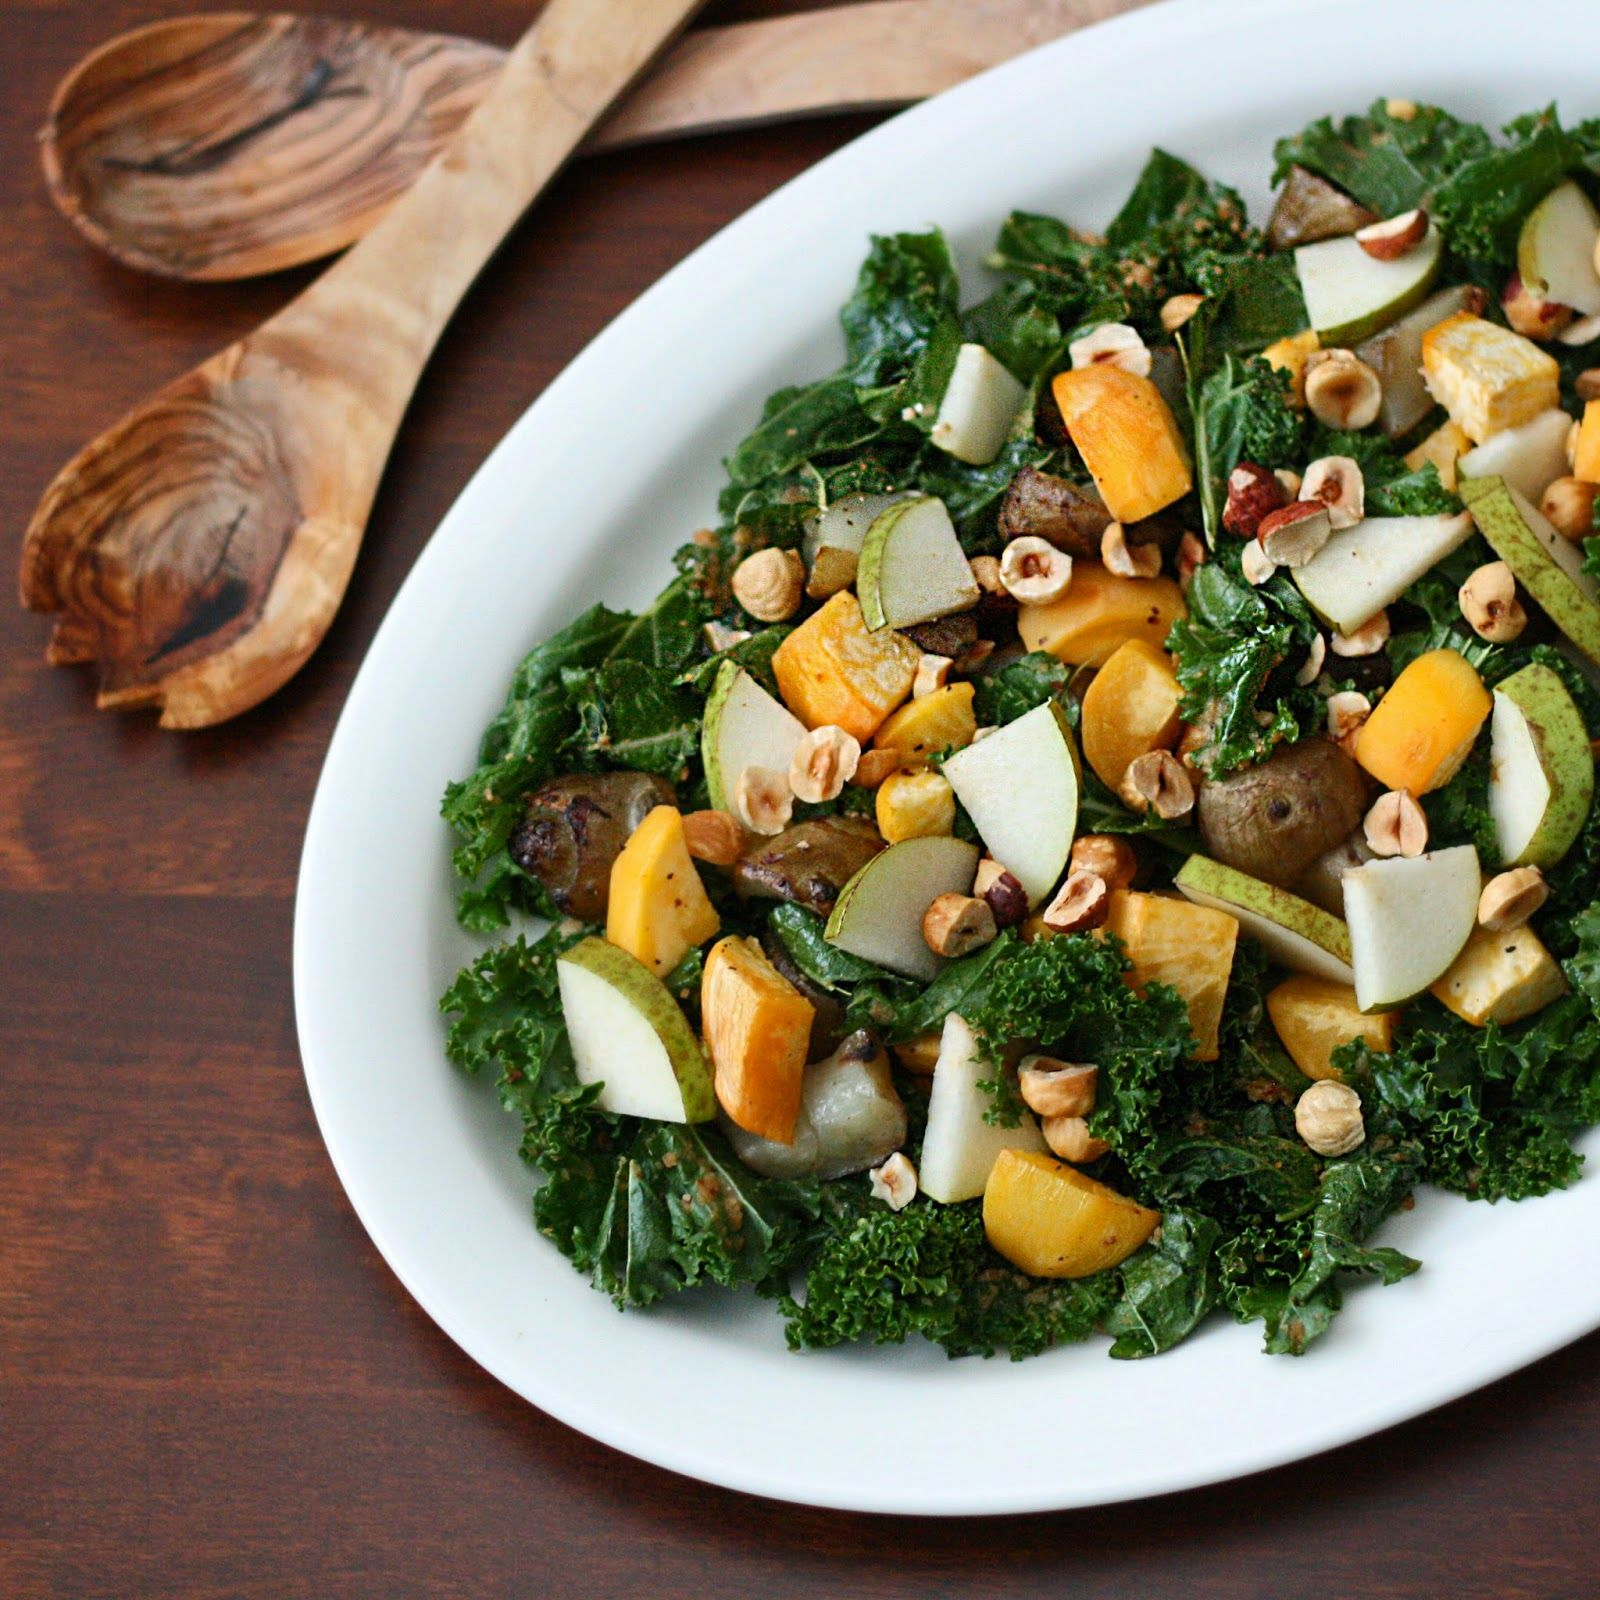 Roasted sunchokes and turnips, kale and juicy pear with creamy, sweet-savory miso-hazelnut dressing. Hearty winter salad. Vegan. - by Maikin mokomin